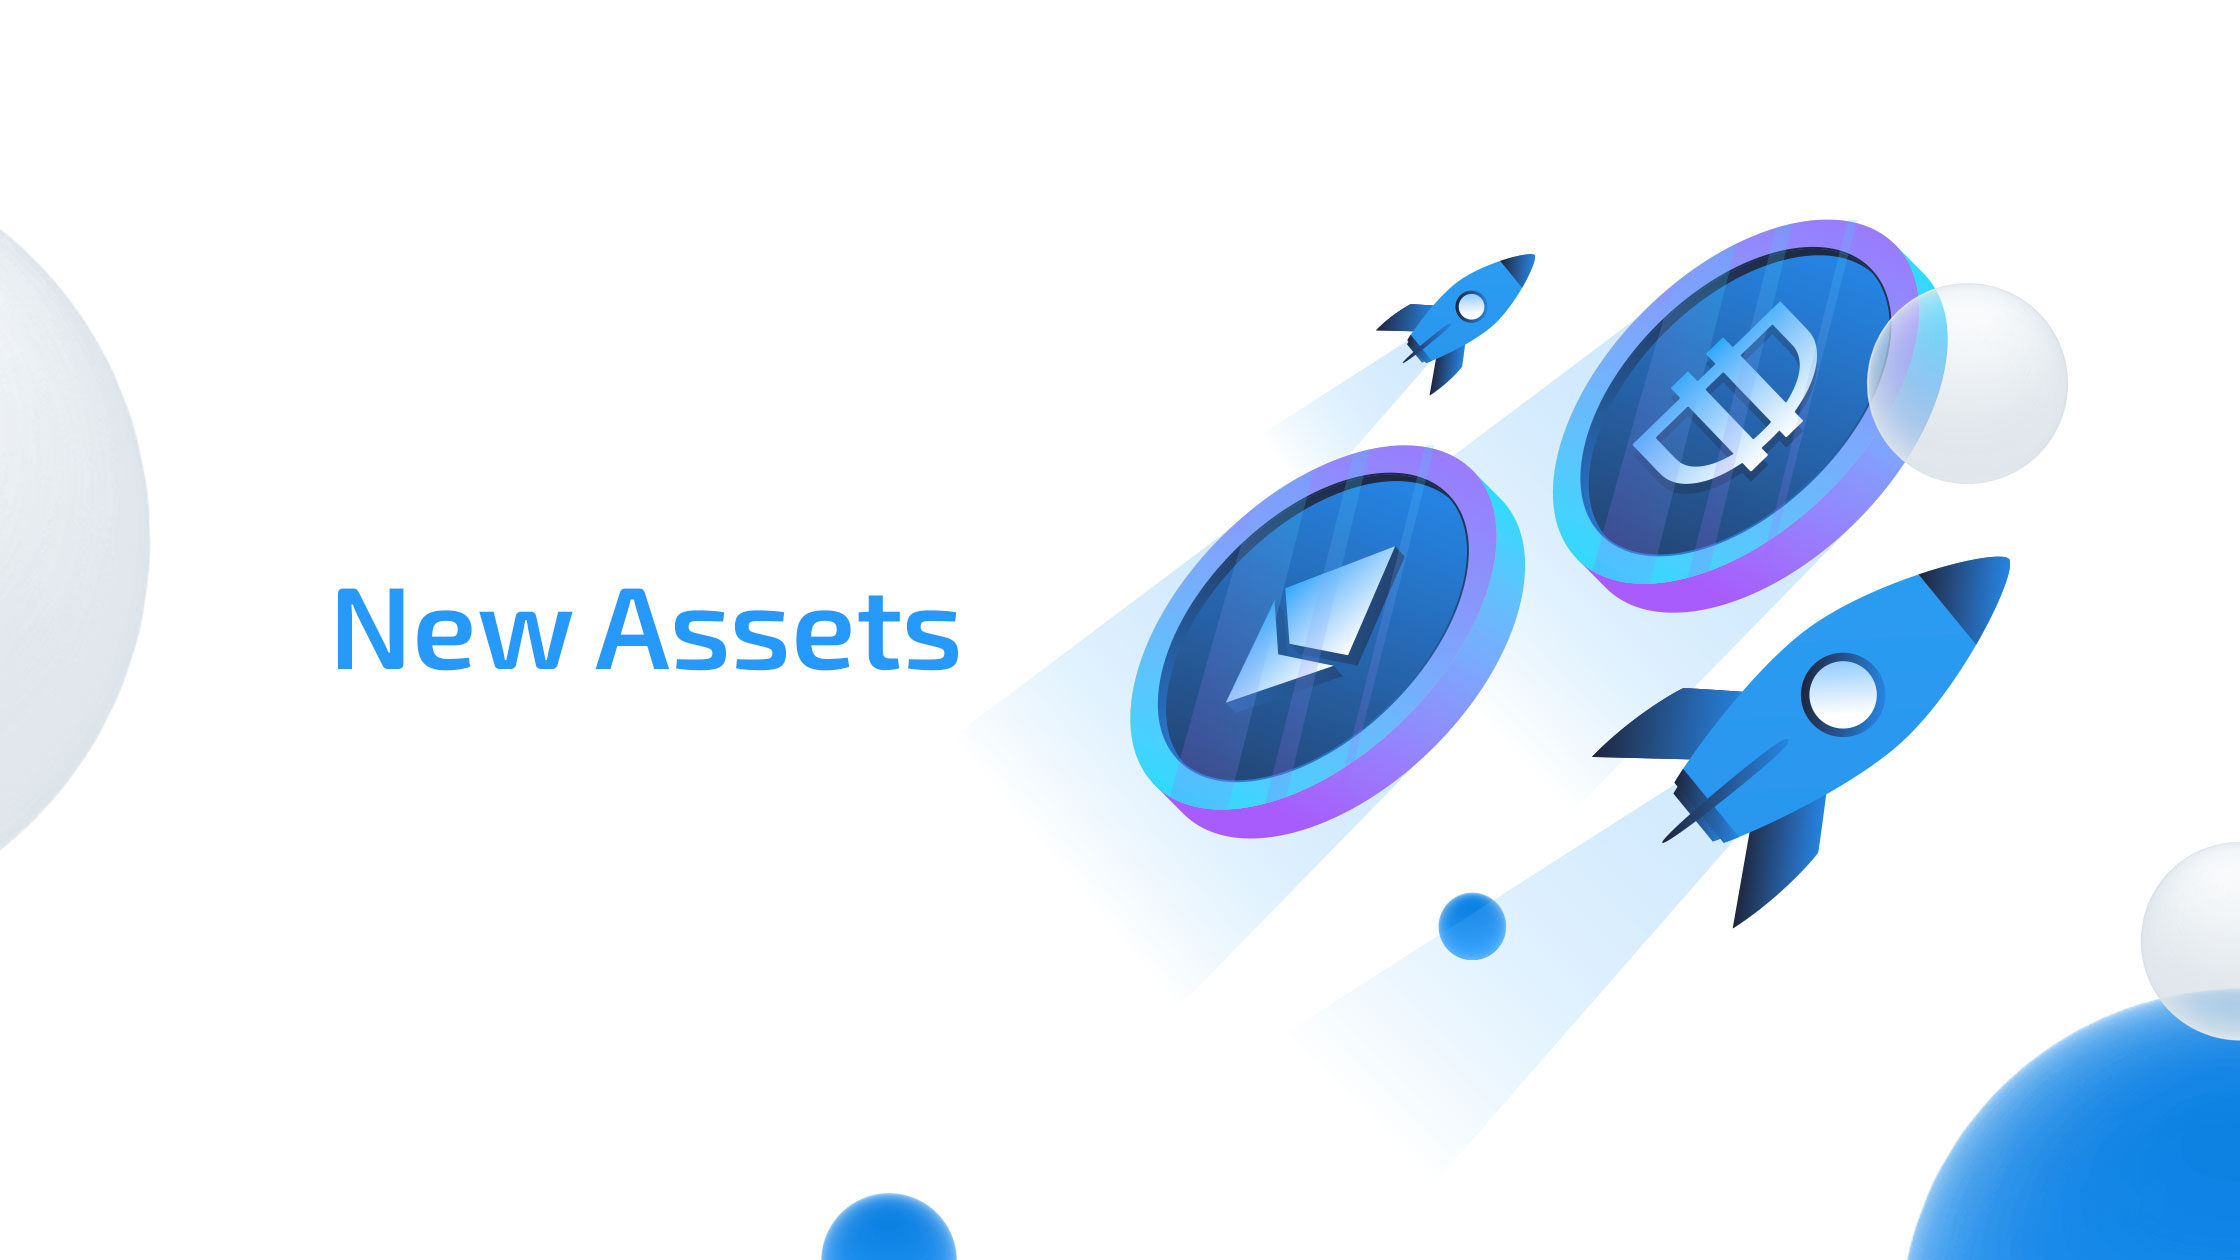 Introducing Two New Assets: Ethereum and Dai, and Weekly Interest Payouts